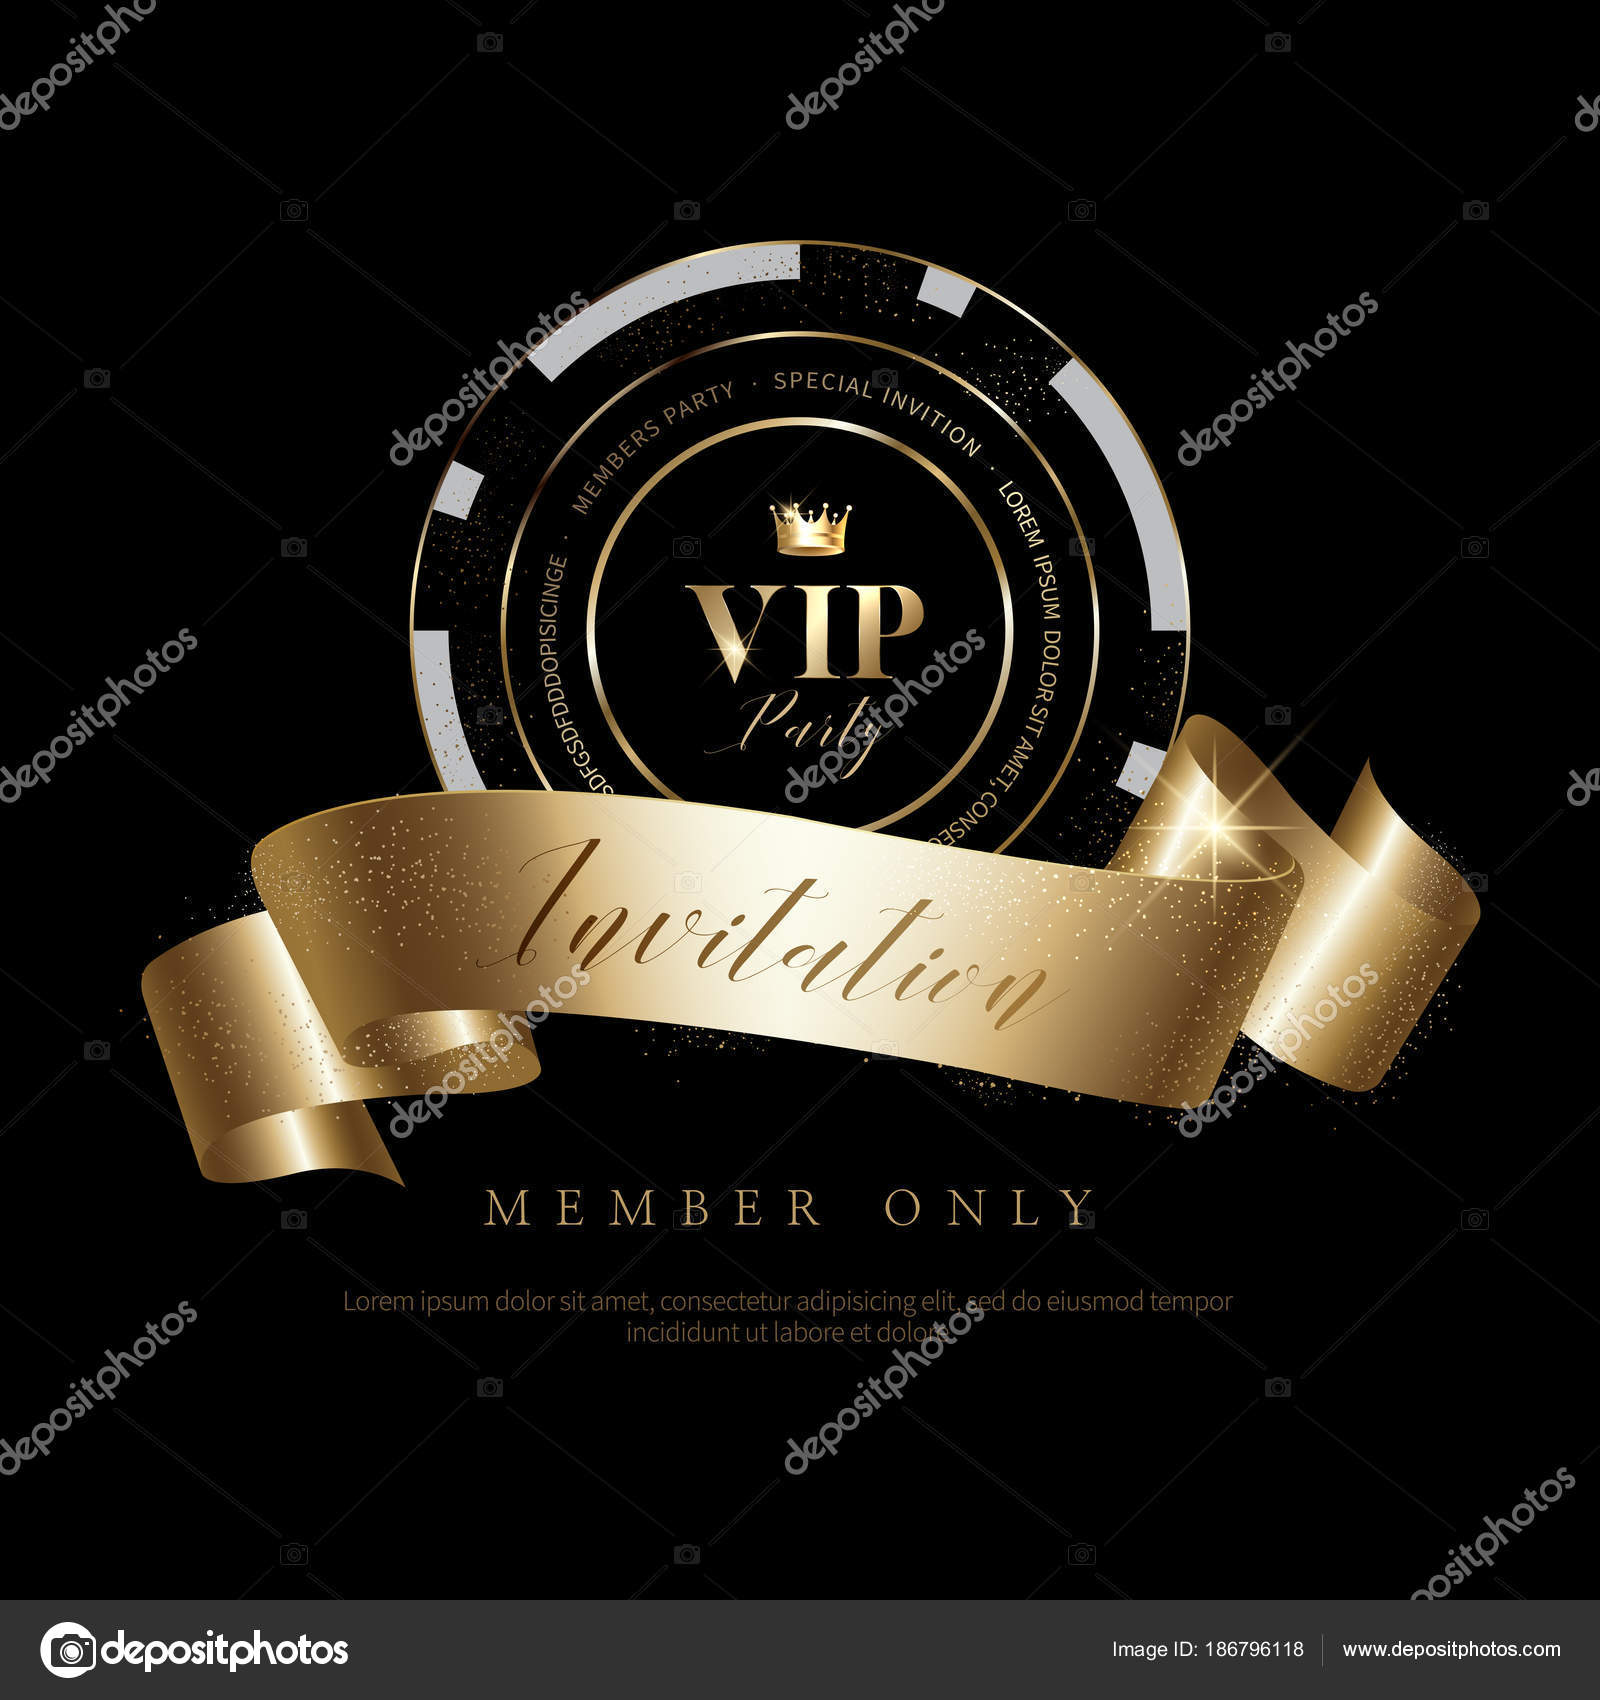 Luxury Vip Invitations Coupon Backgrounds Stock Vector LHG